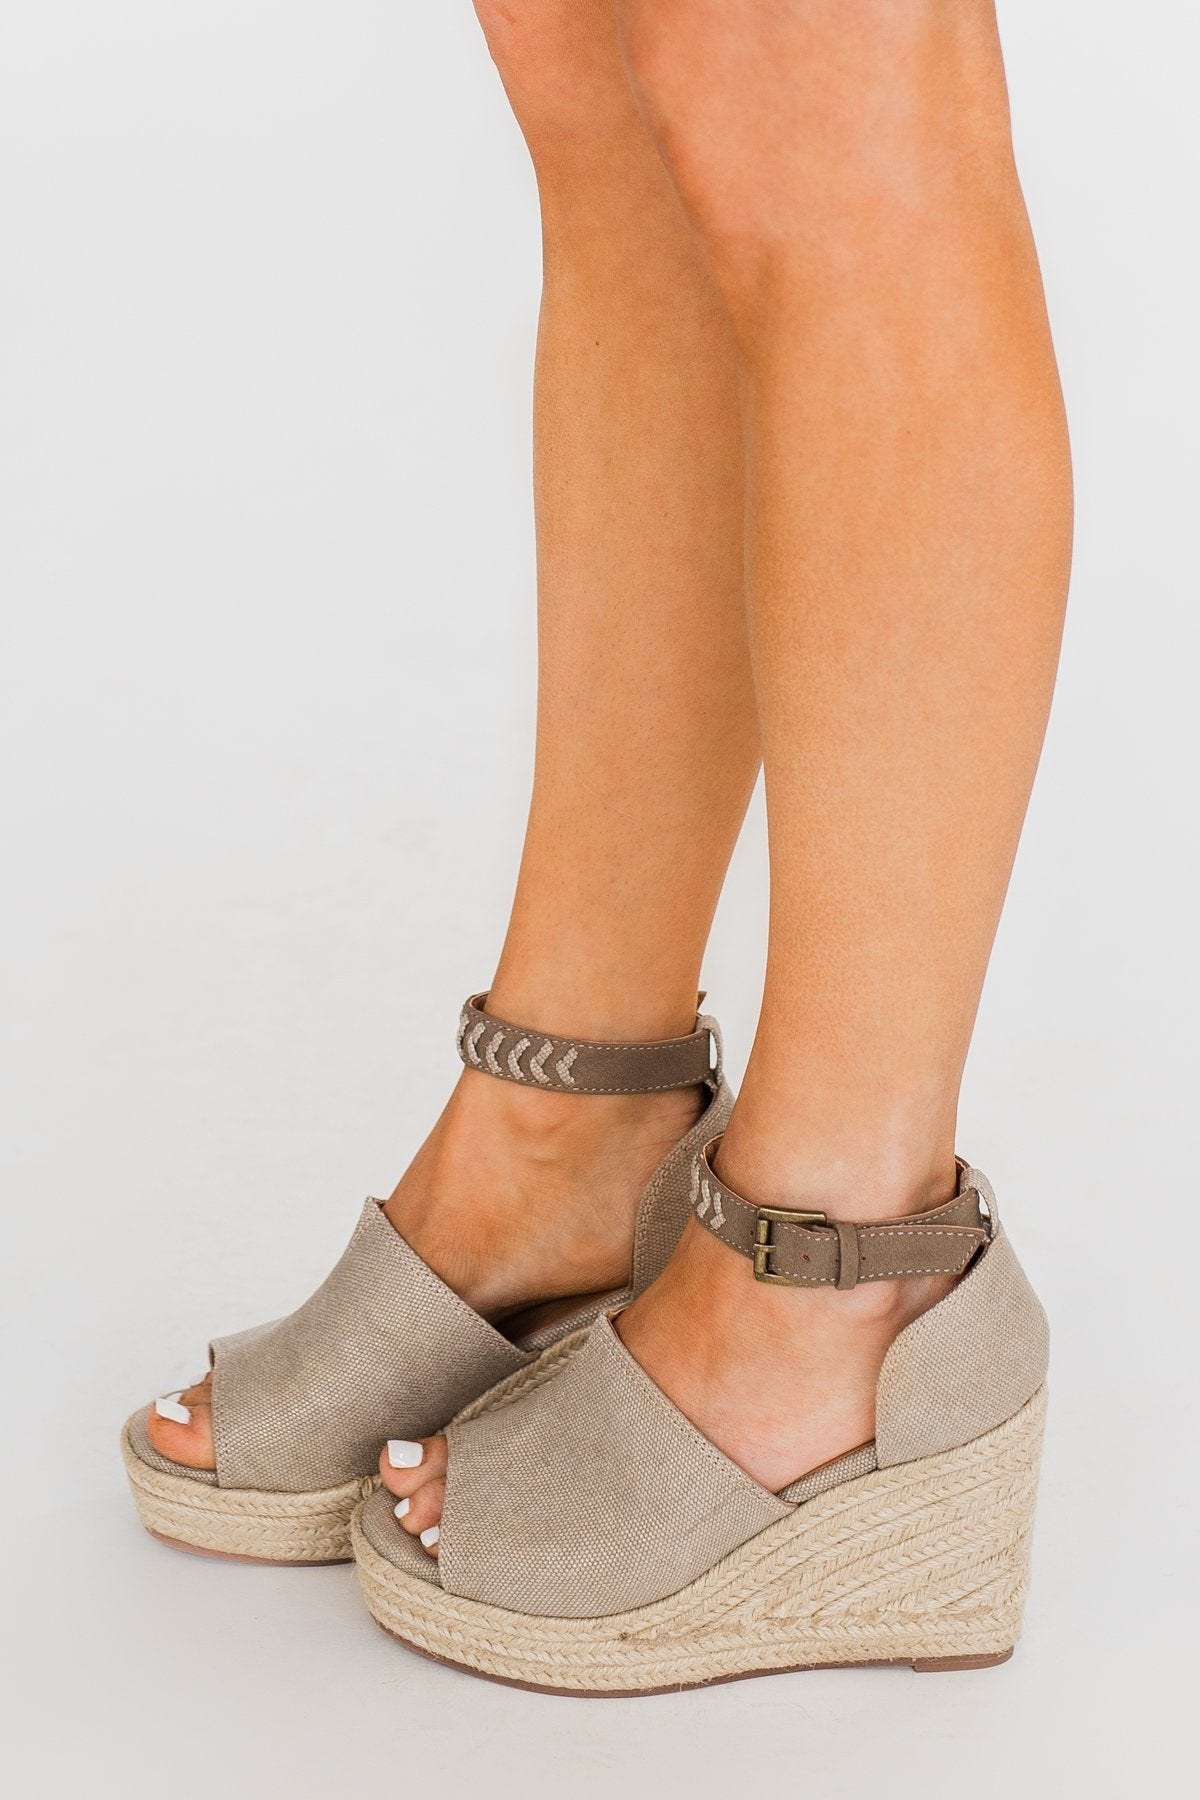 Not Rated Leif Wedges- Taupe